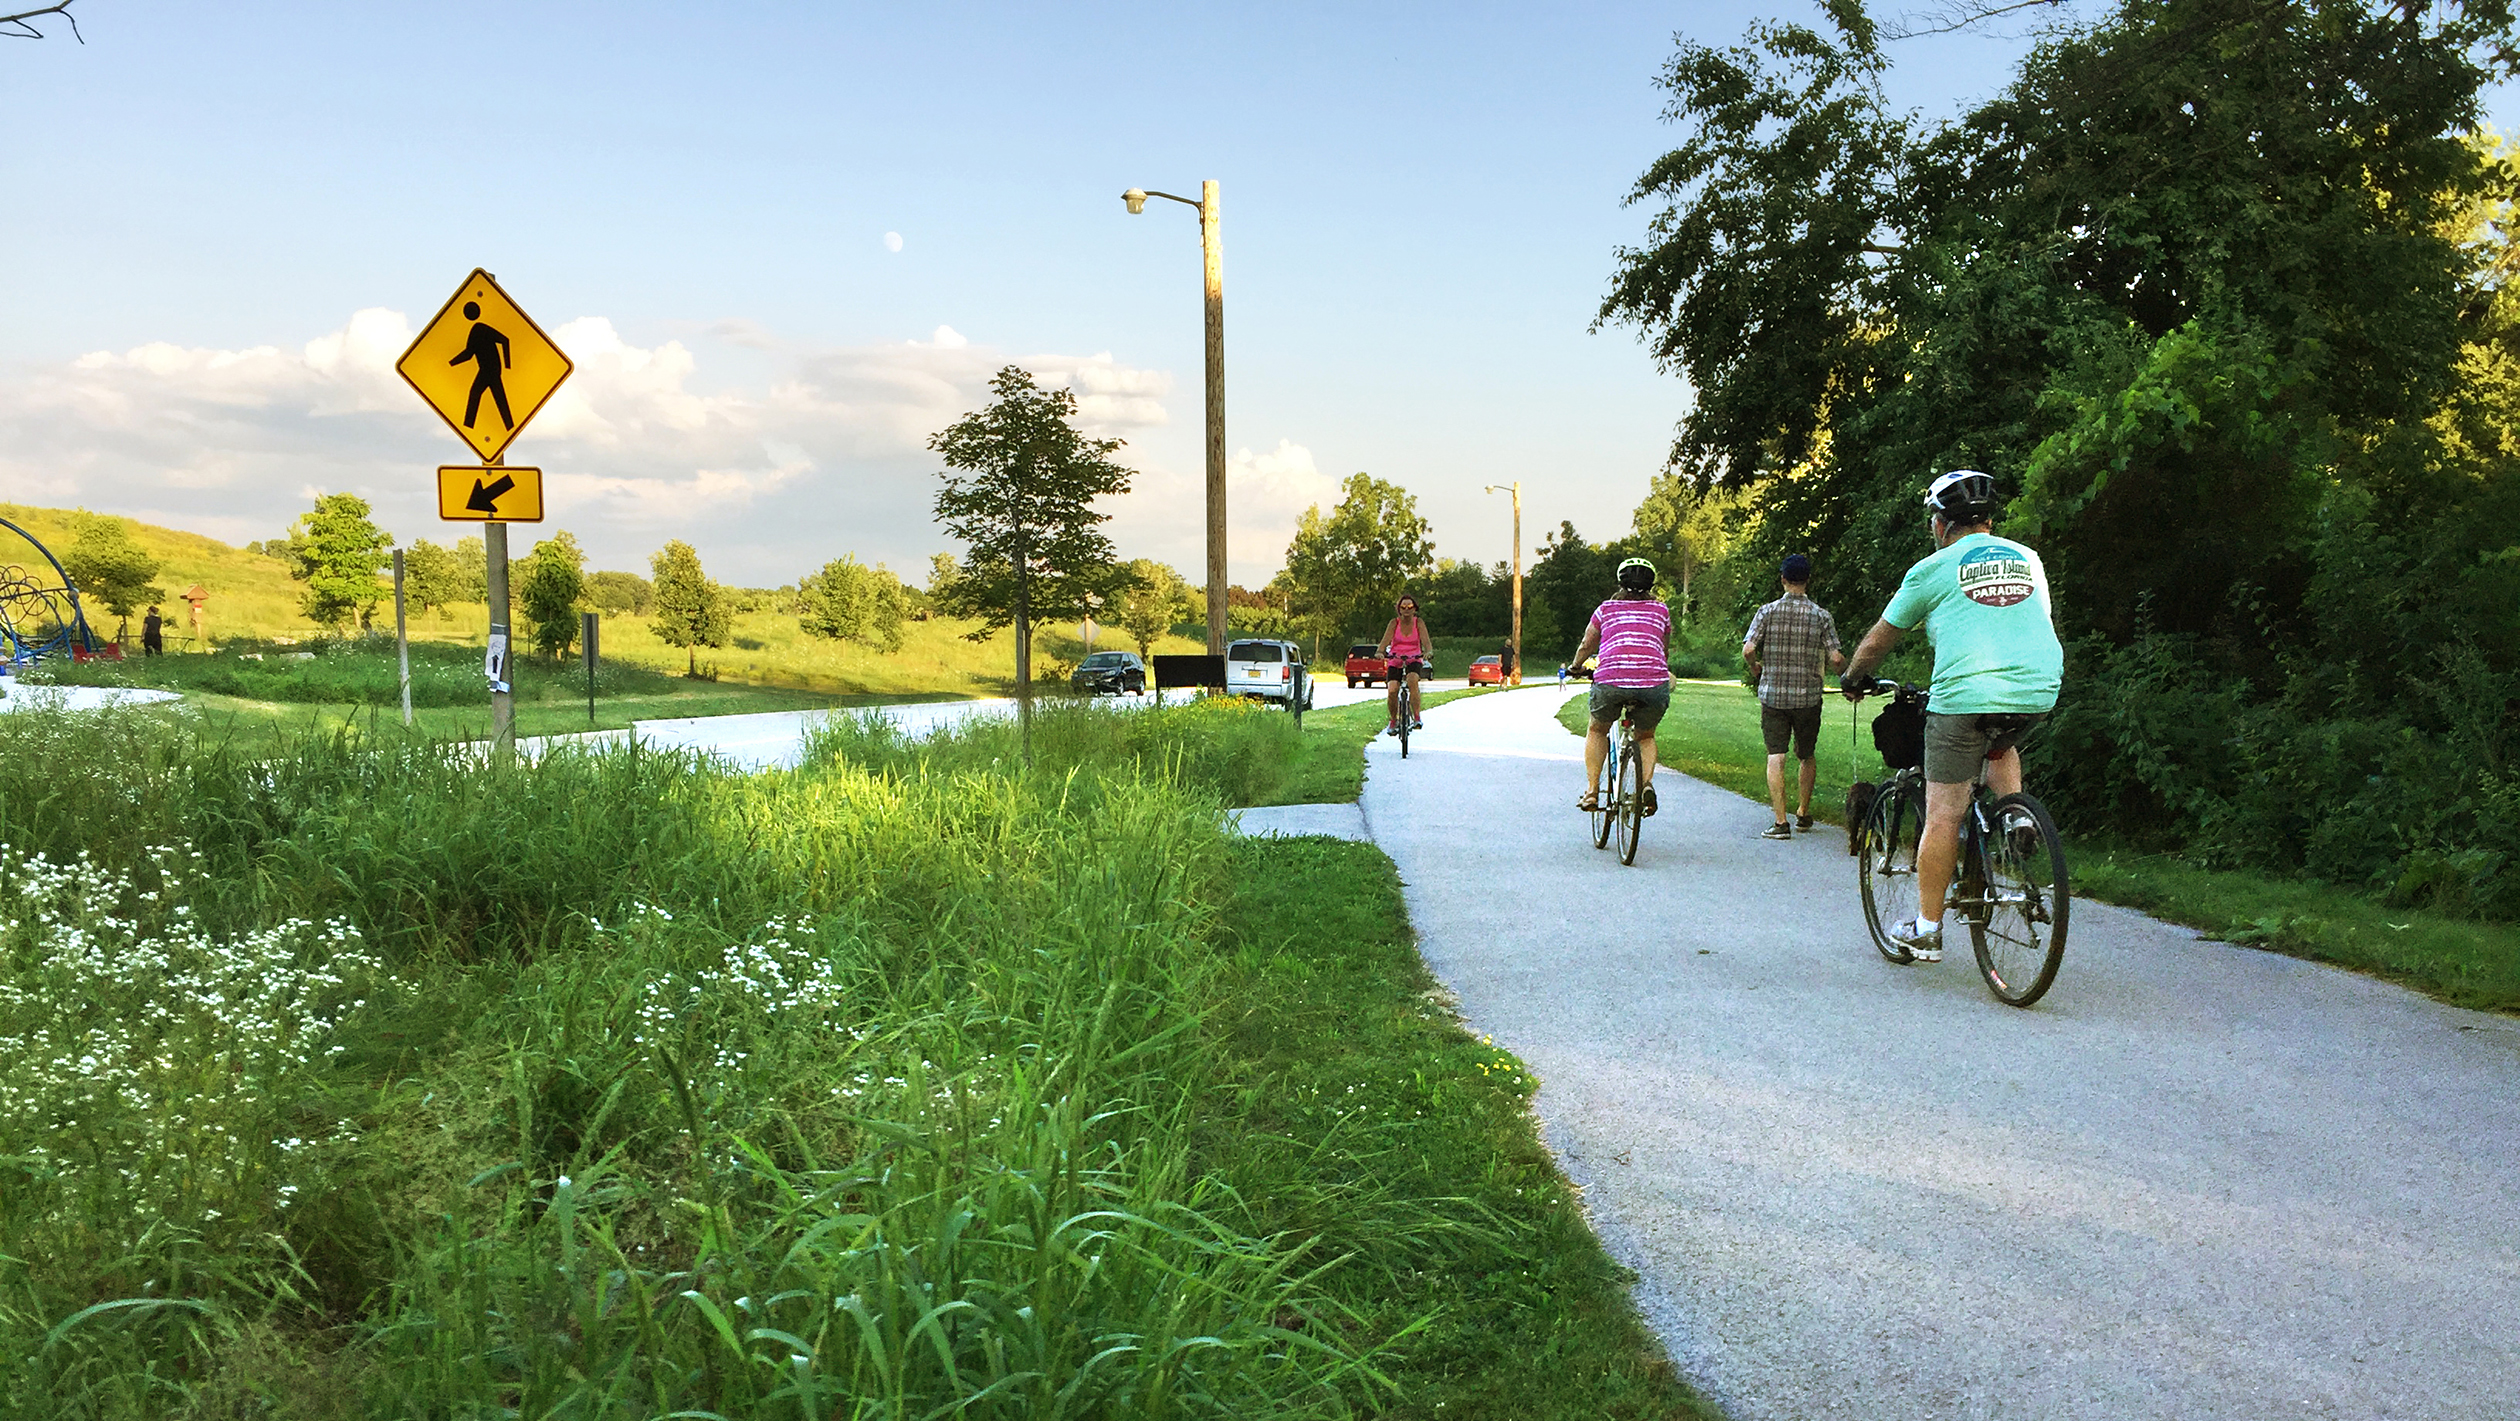 Saiki Design provided corridor-wide planting and landscape restoration for the reconstruction of this popular roadway that experiences high volumes of commuter vehicles as well as recreational pedestrian and bicycle traffic.